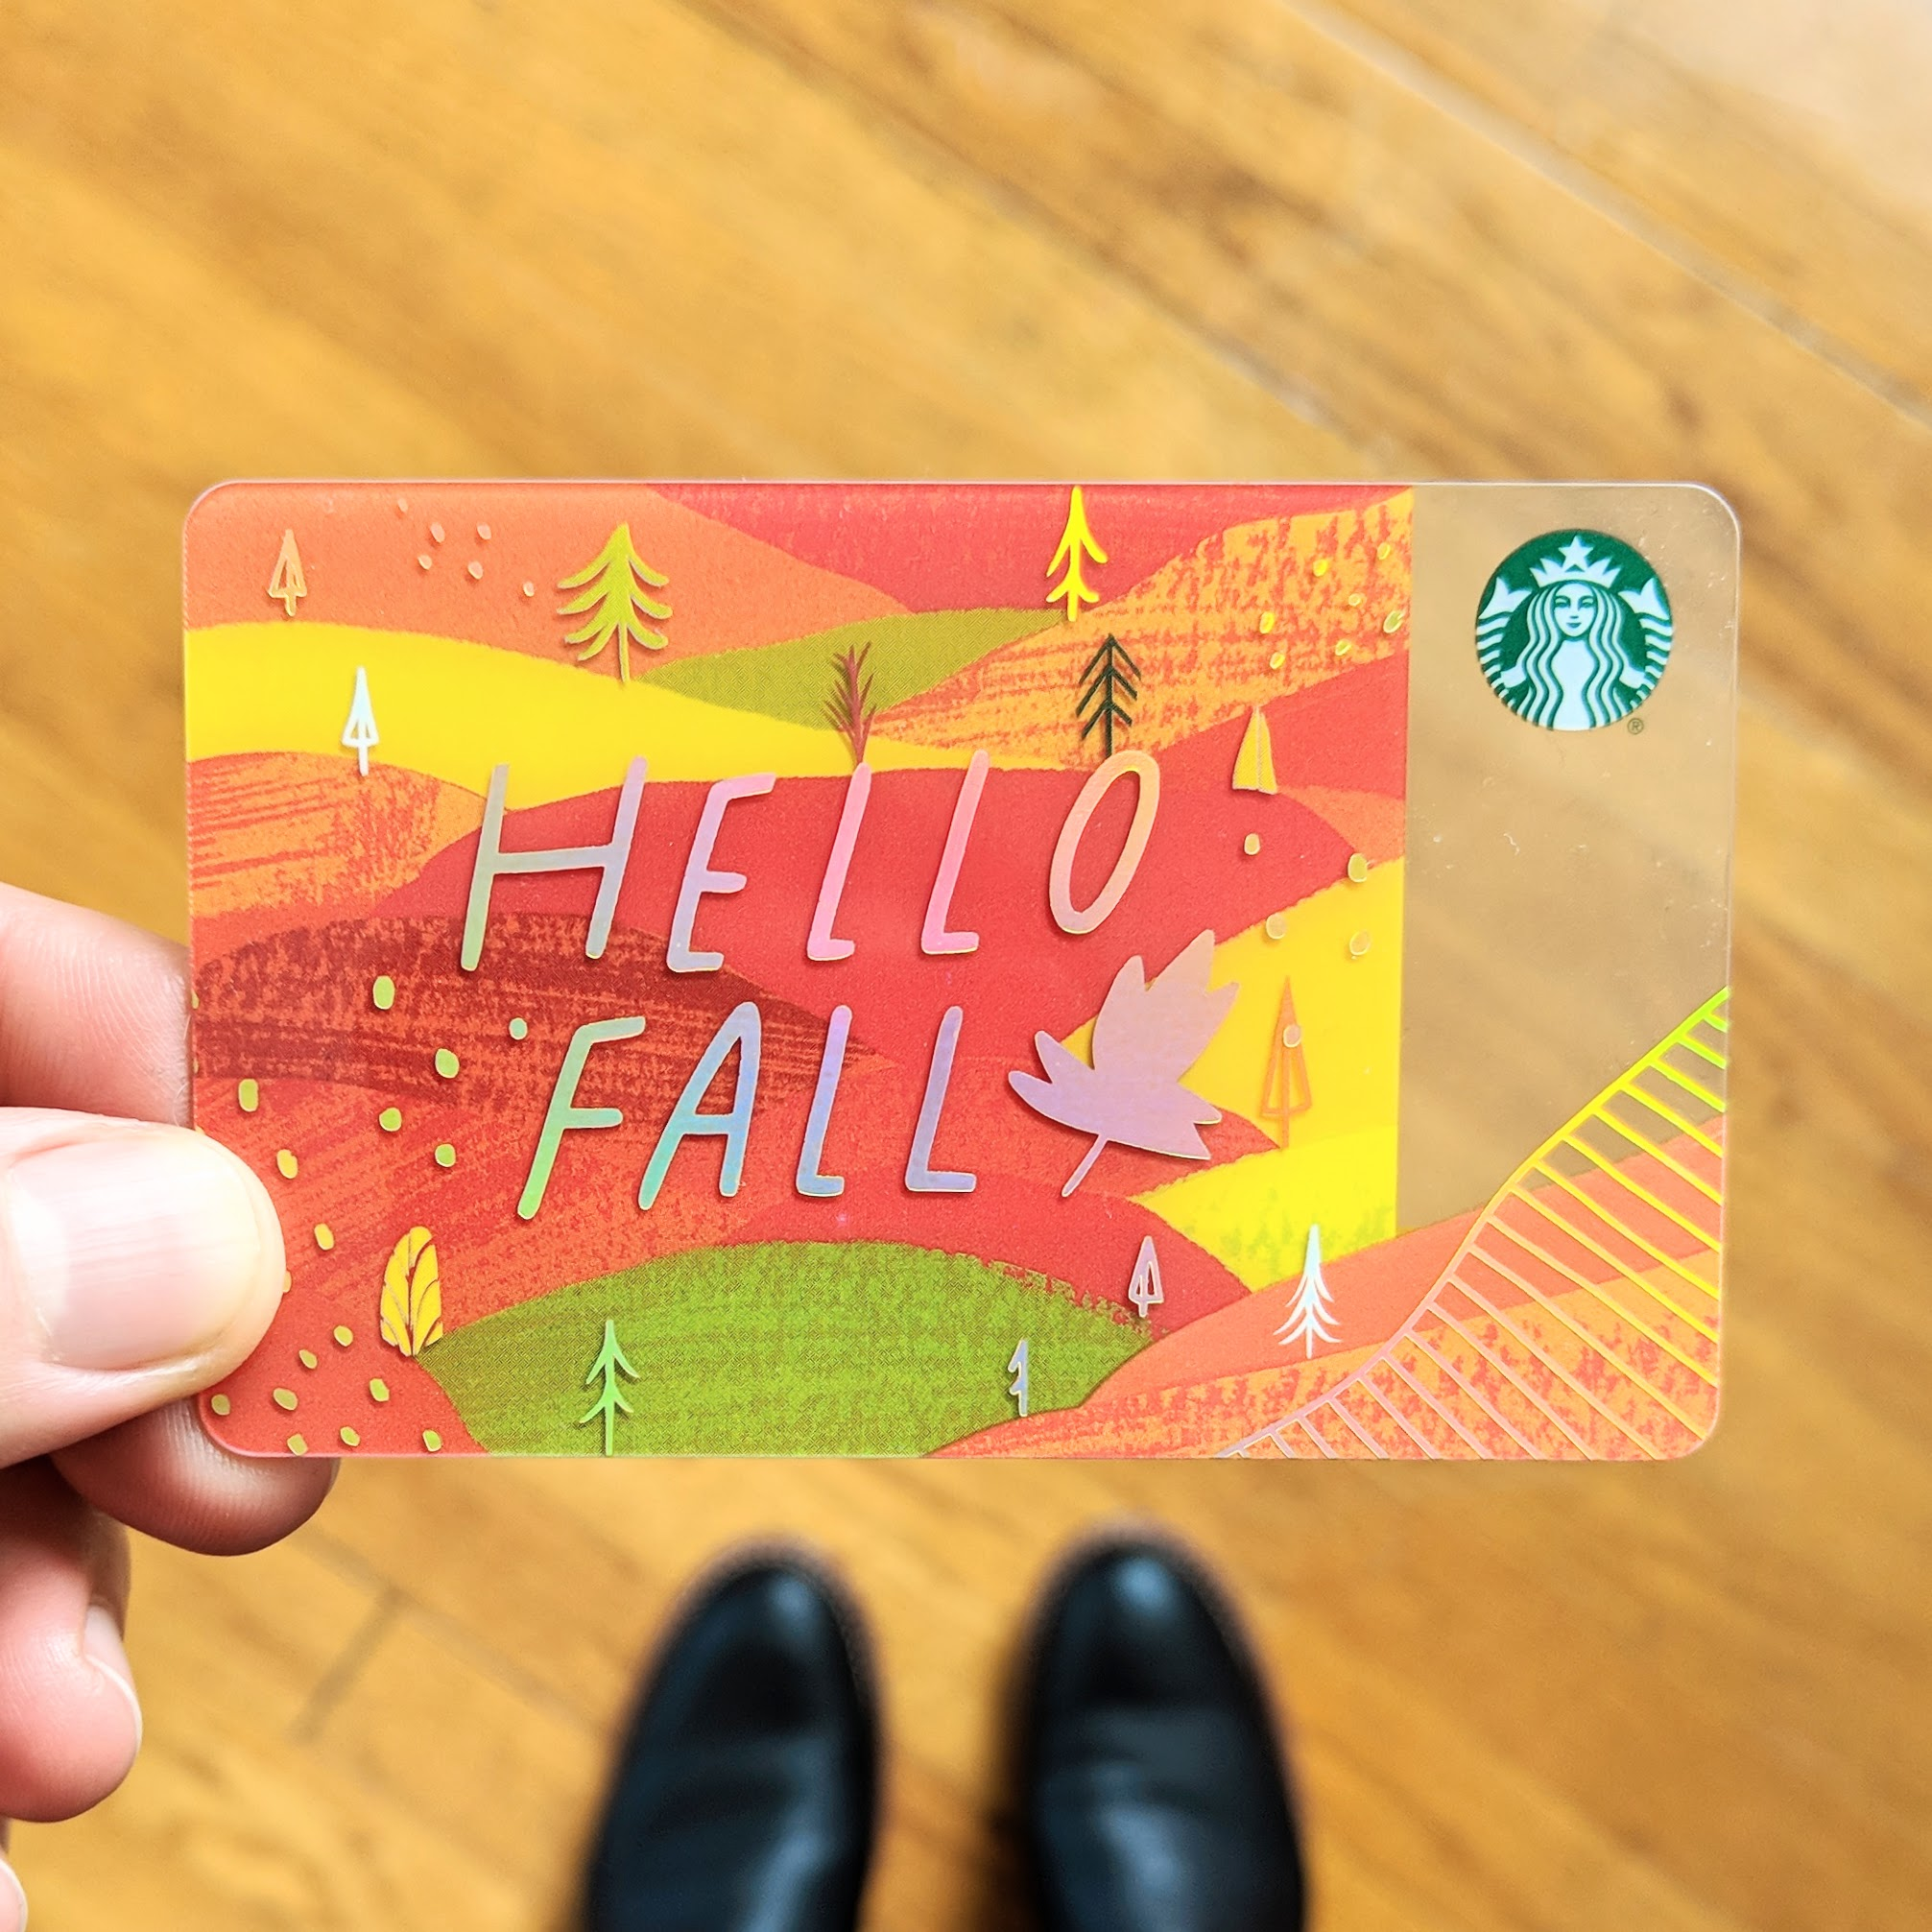 starbucks fall card.jpg